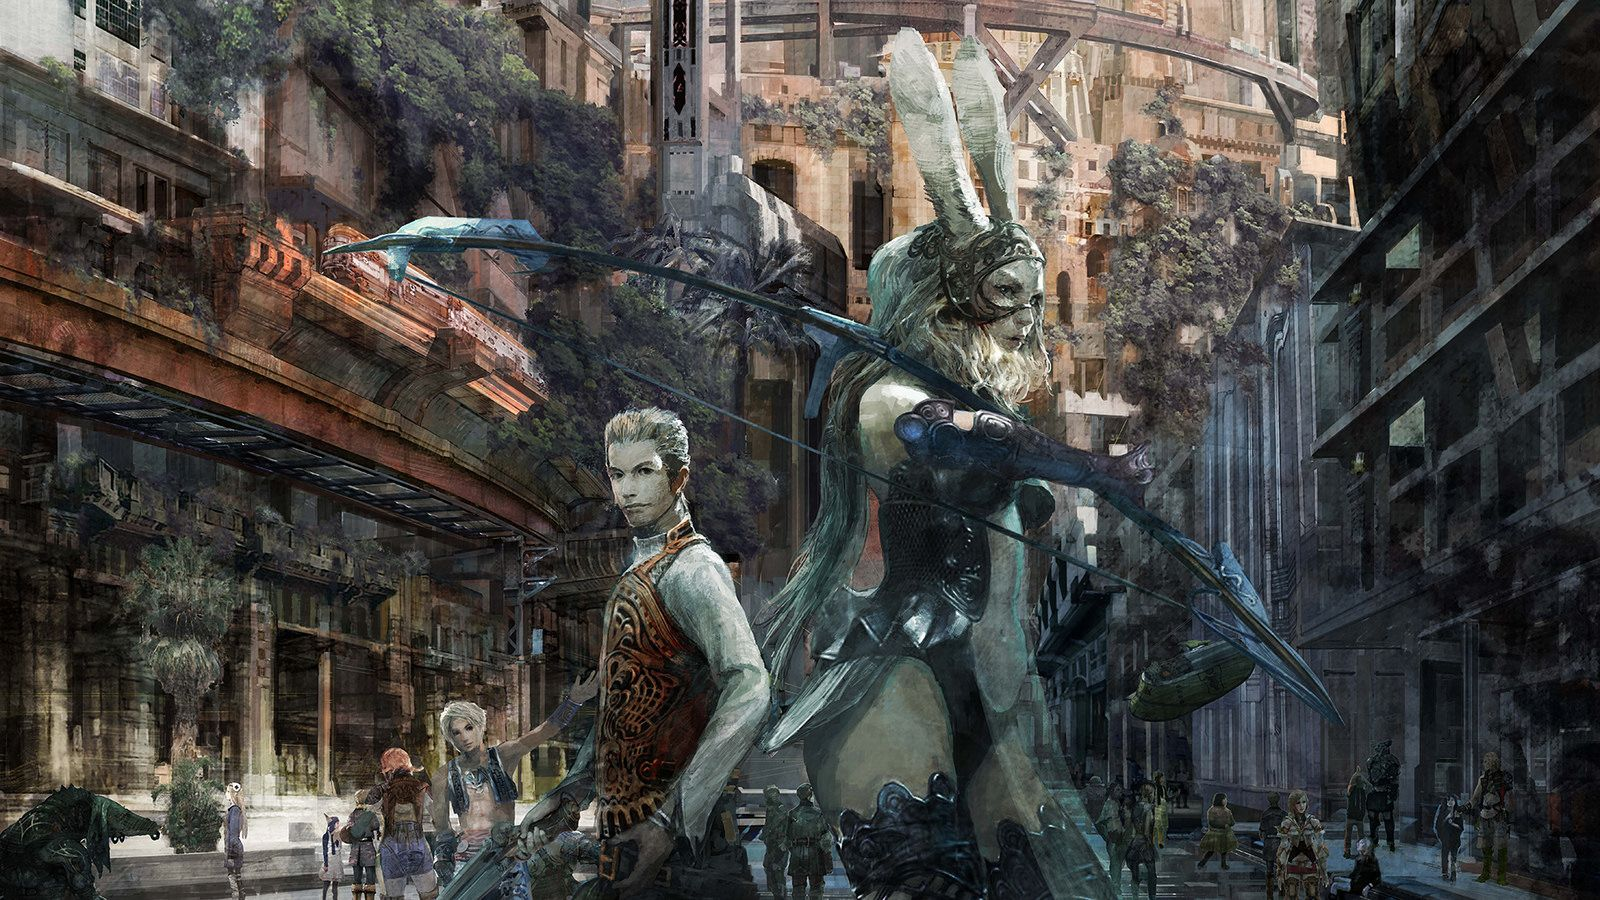 The Long Path to Final Fantasy XII The Zodiac Age #Playstation4 #PS4 #Sony #videogames #playstation #gamer #games #gaming